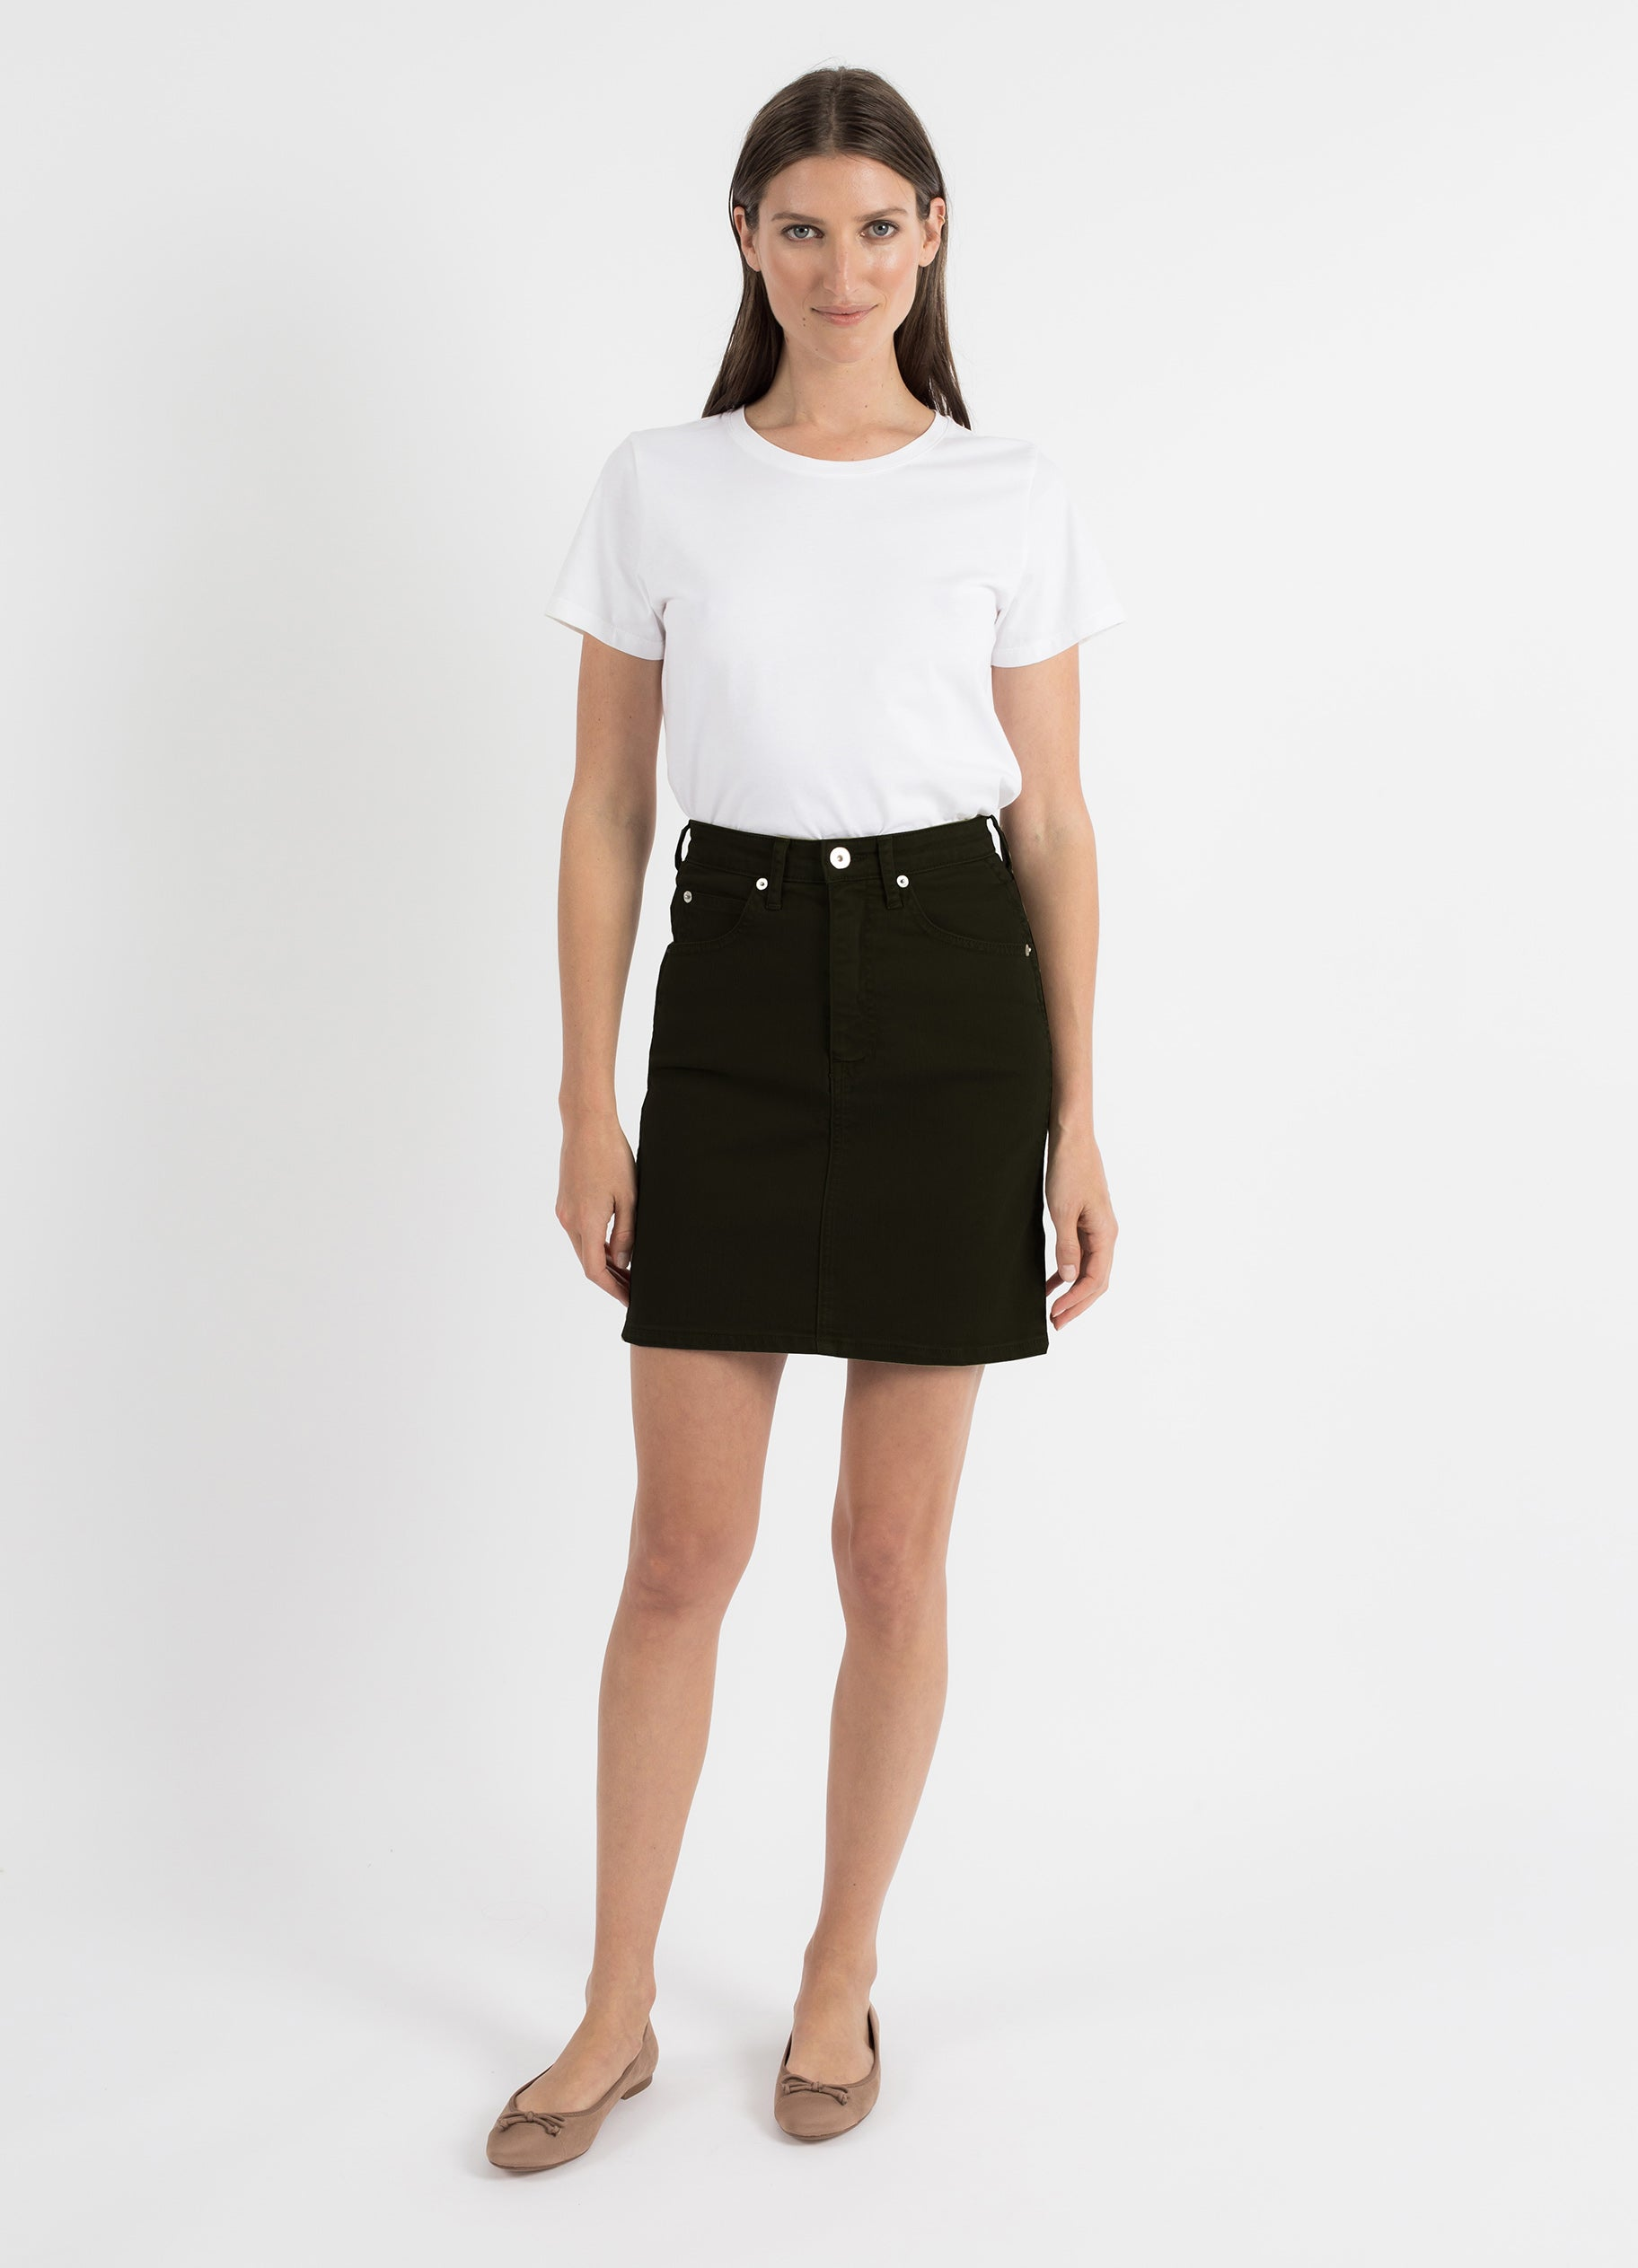 Tallulah Skirt in Noir